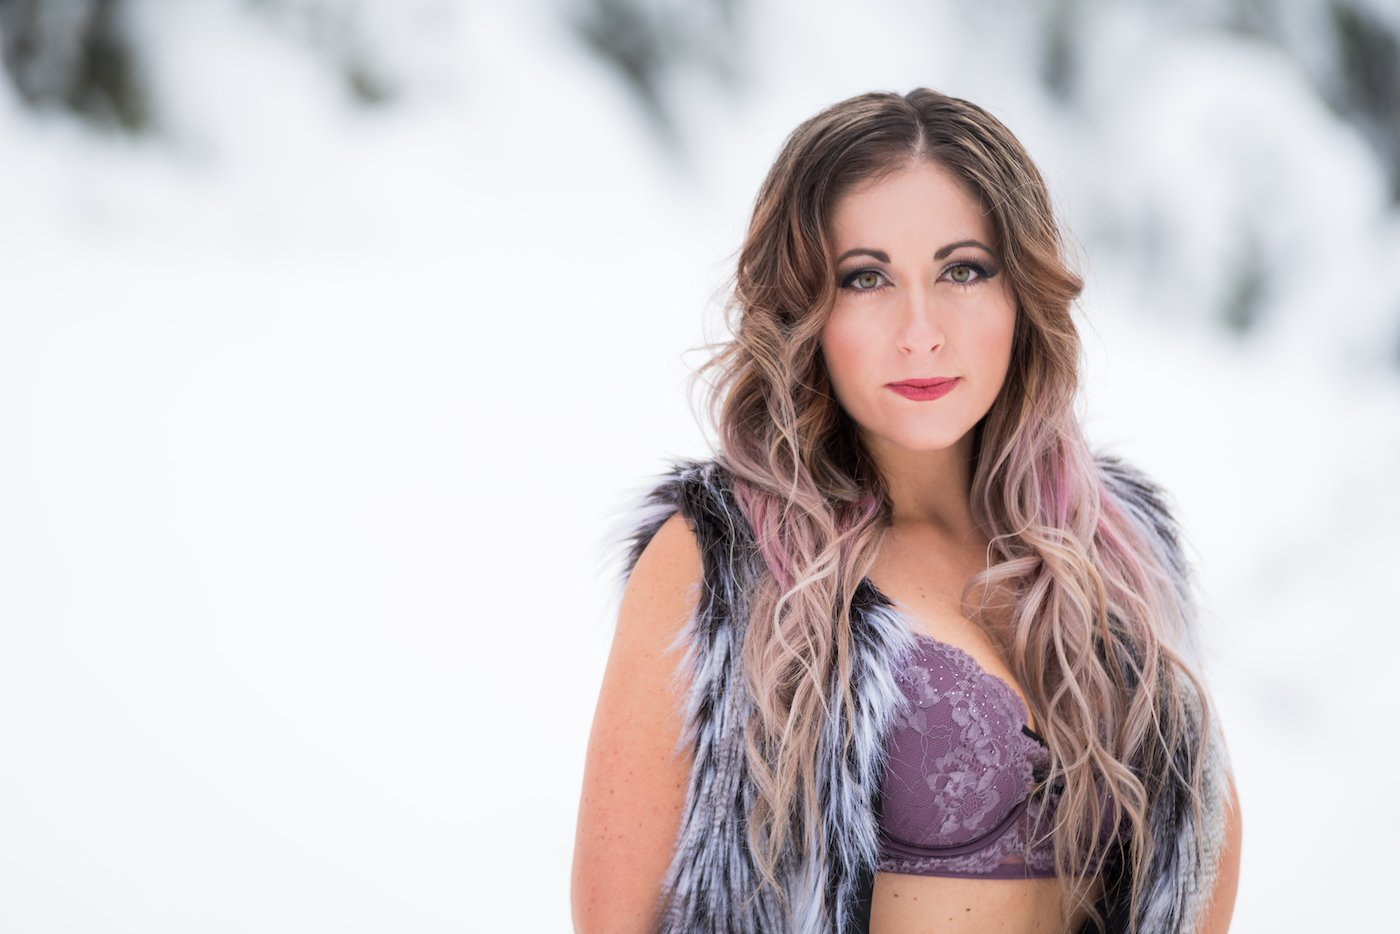 Read more on How to Orchestrate a Winter Photo Shoot